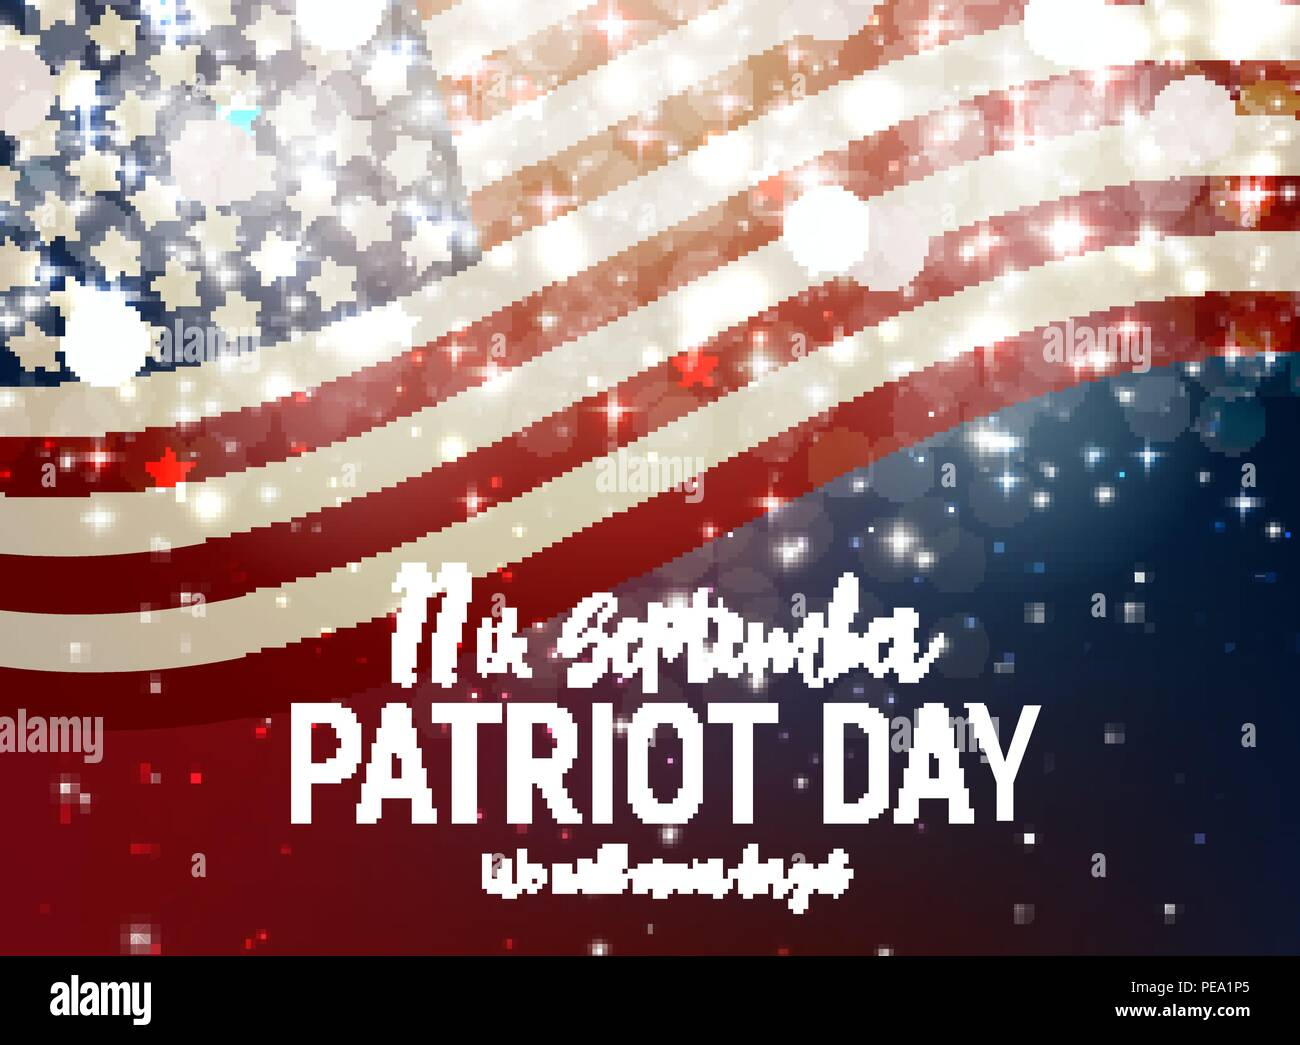 Patriot Day Stock Photos Amp Patriot Day Stock Images